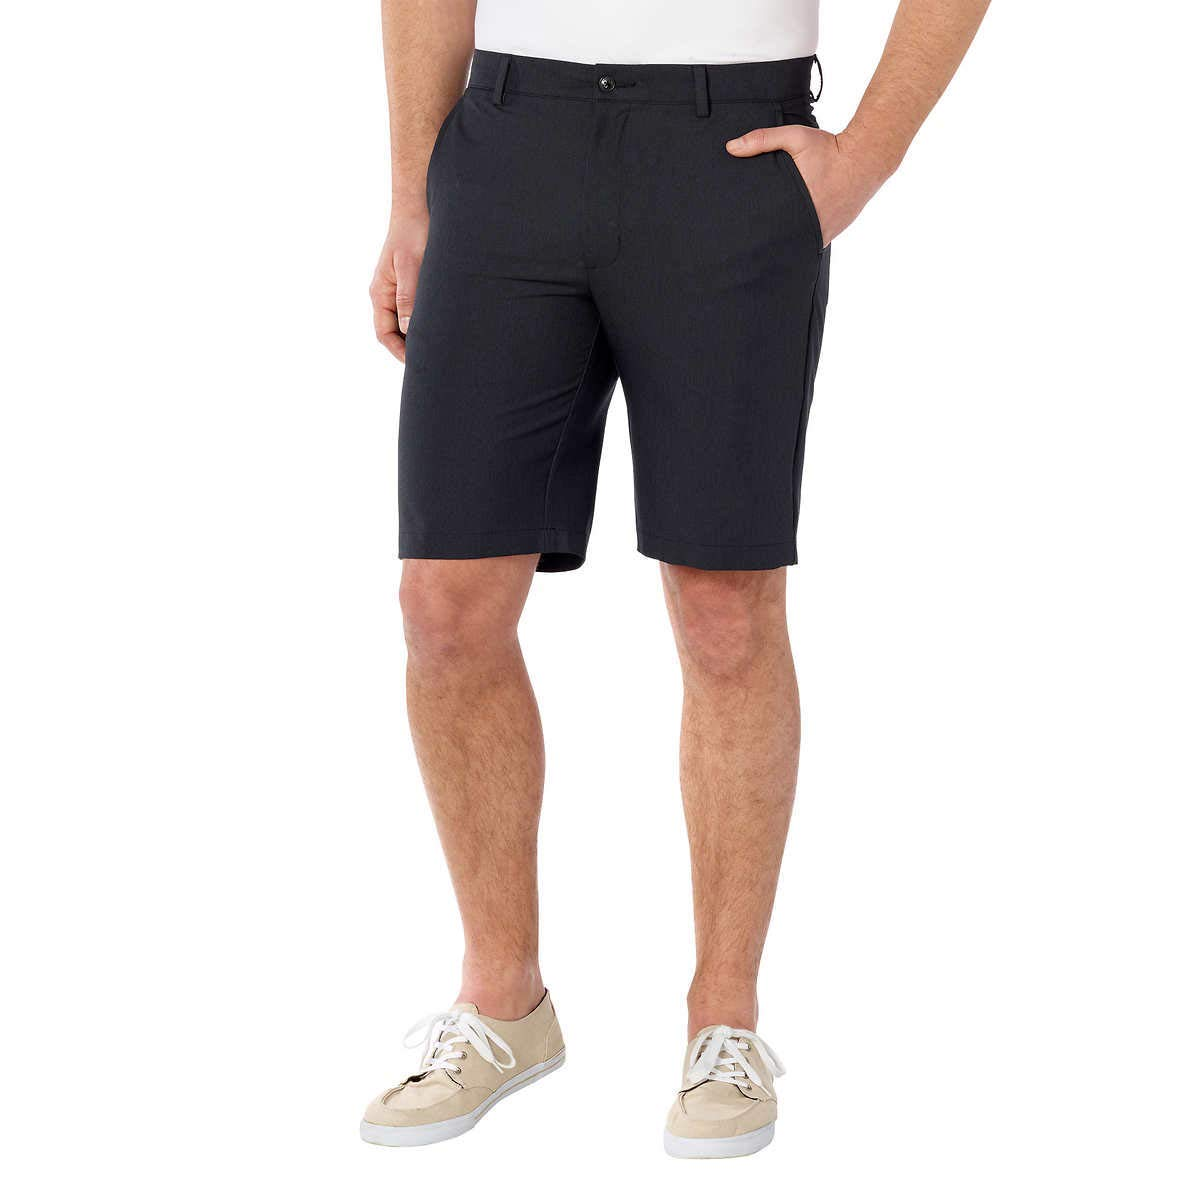 Greg Norman Ml75 Luxury Microfiber Ultimate Travel Golf Shorts, Black, Size 32